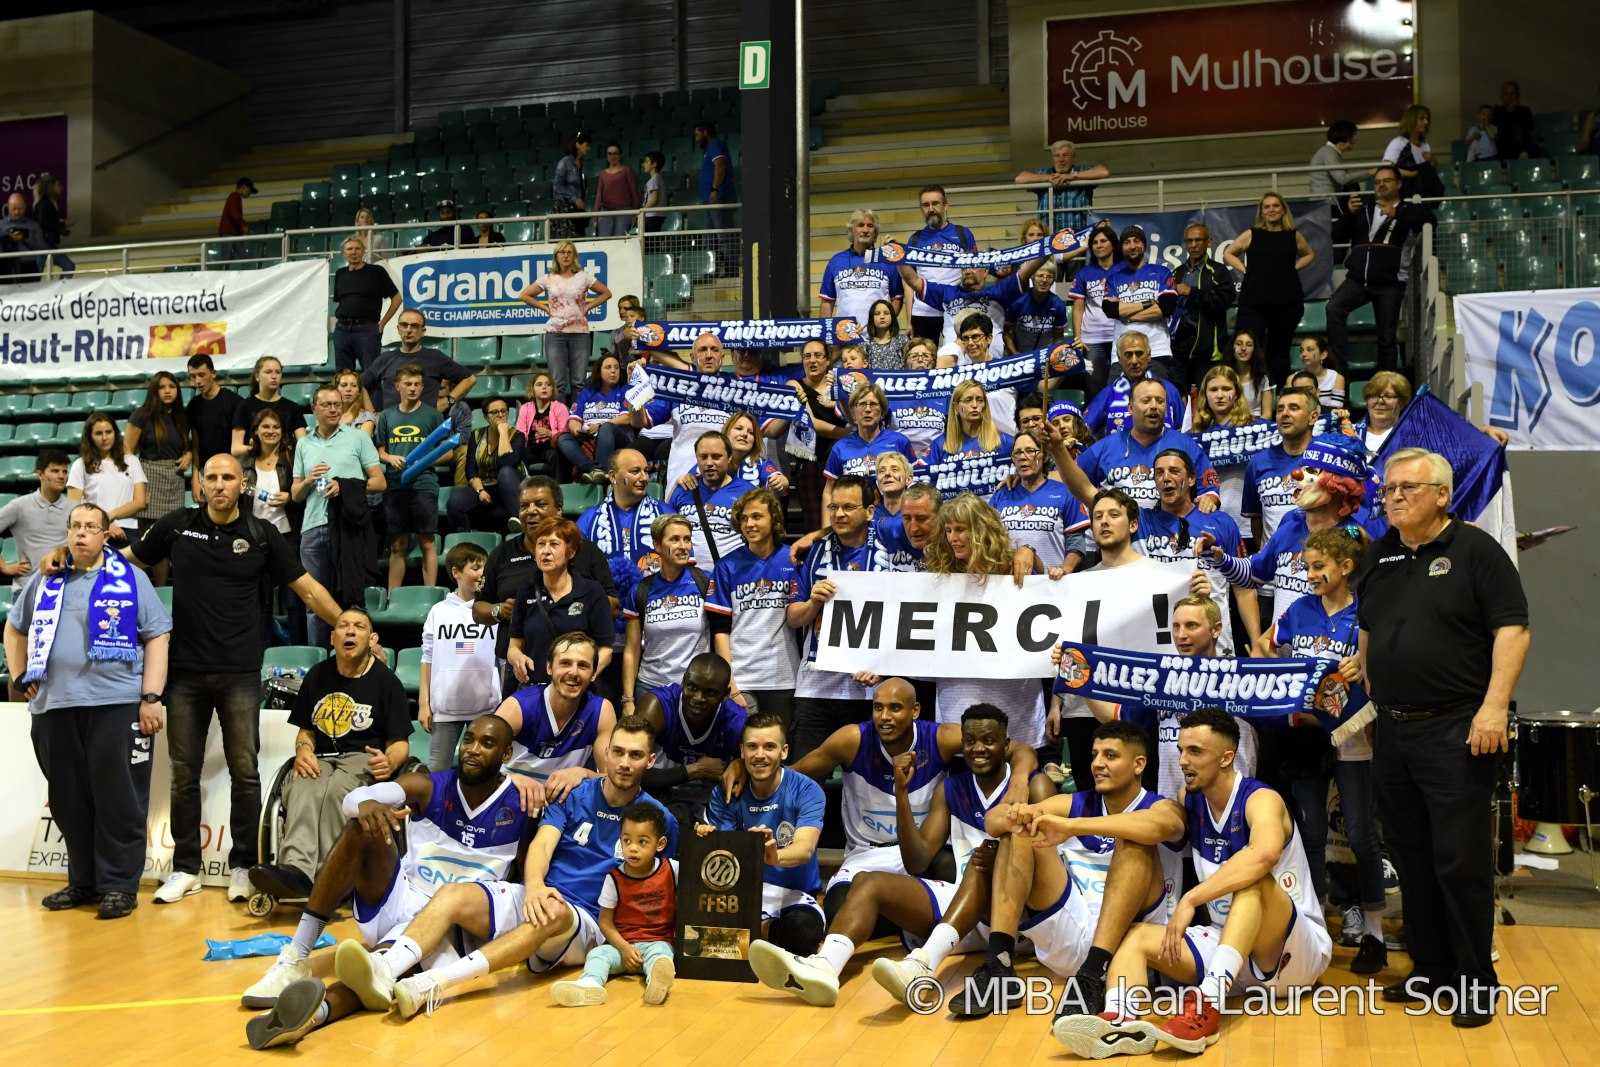 [J.18] FC MULHOUSE - Pfastatt AS Saint-Maurice : 76 - 106 - Page 2 Merci